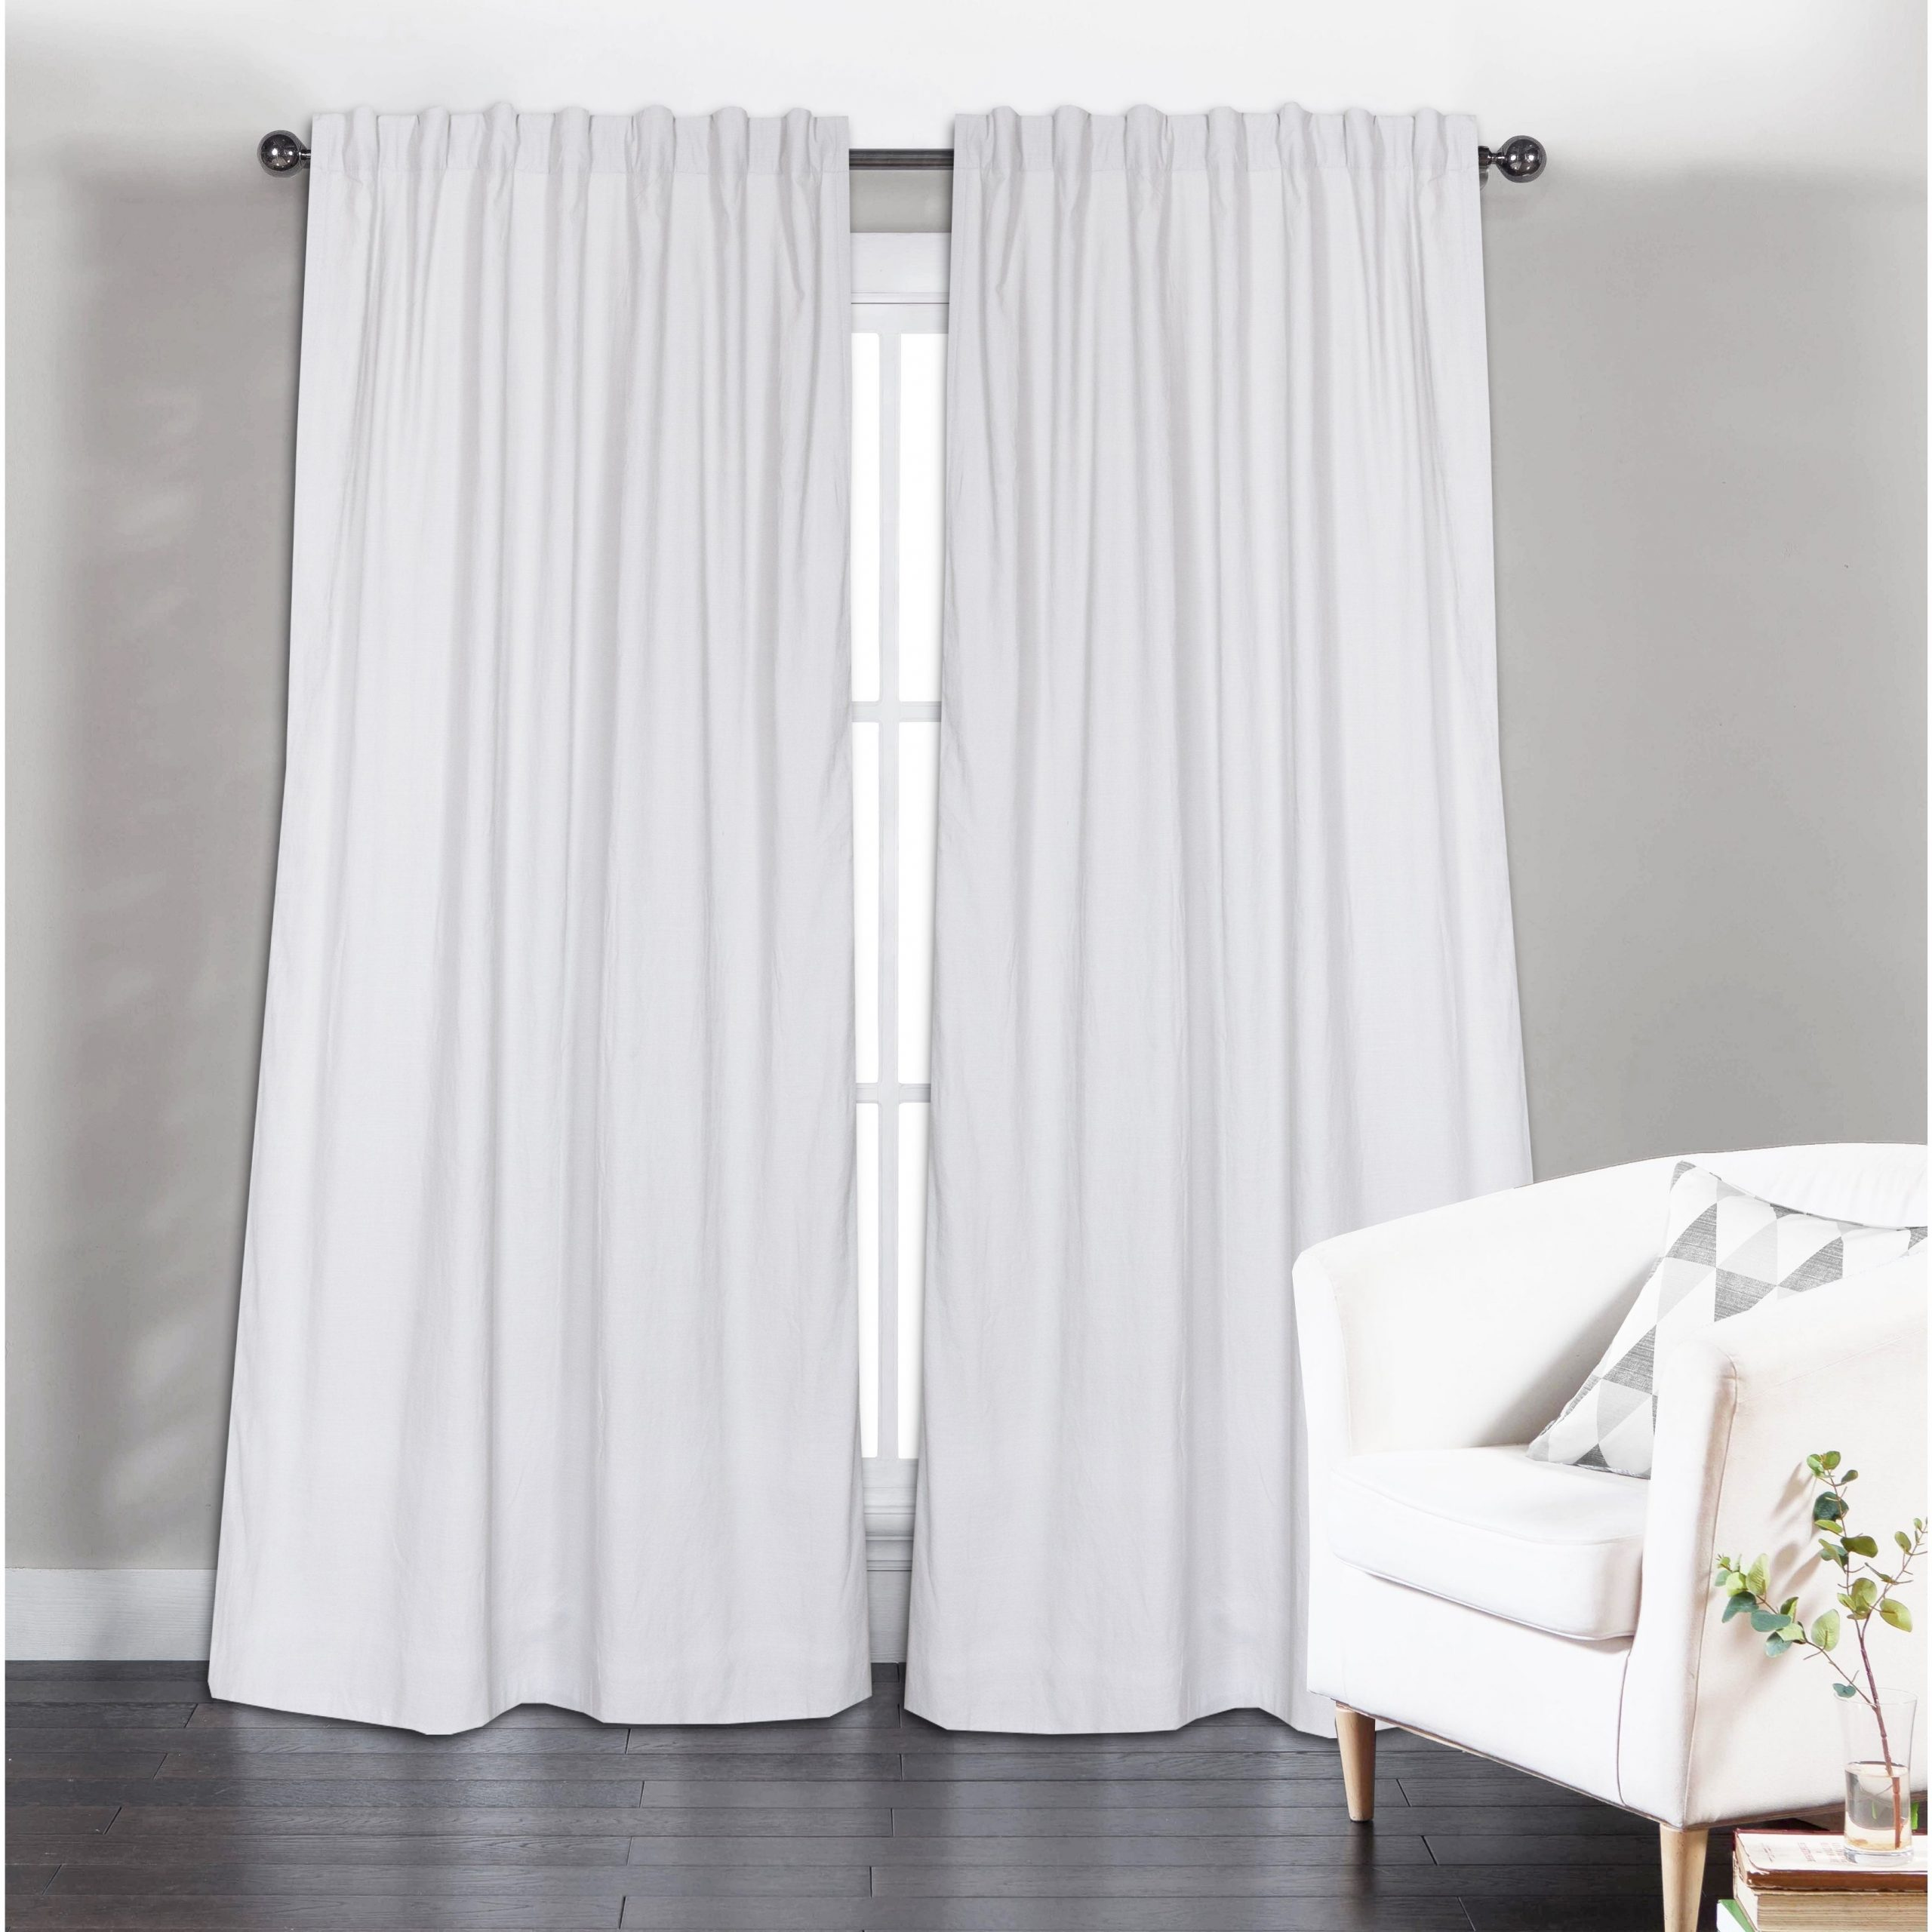 Well Liked Long Solid Cotton Curtain Panel, White(set Of 2) Inside Solid Cotton Curtain Panels (View 4 of 20)